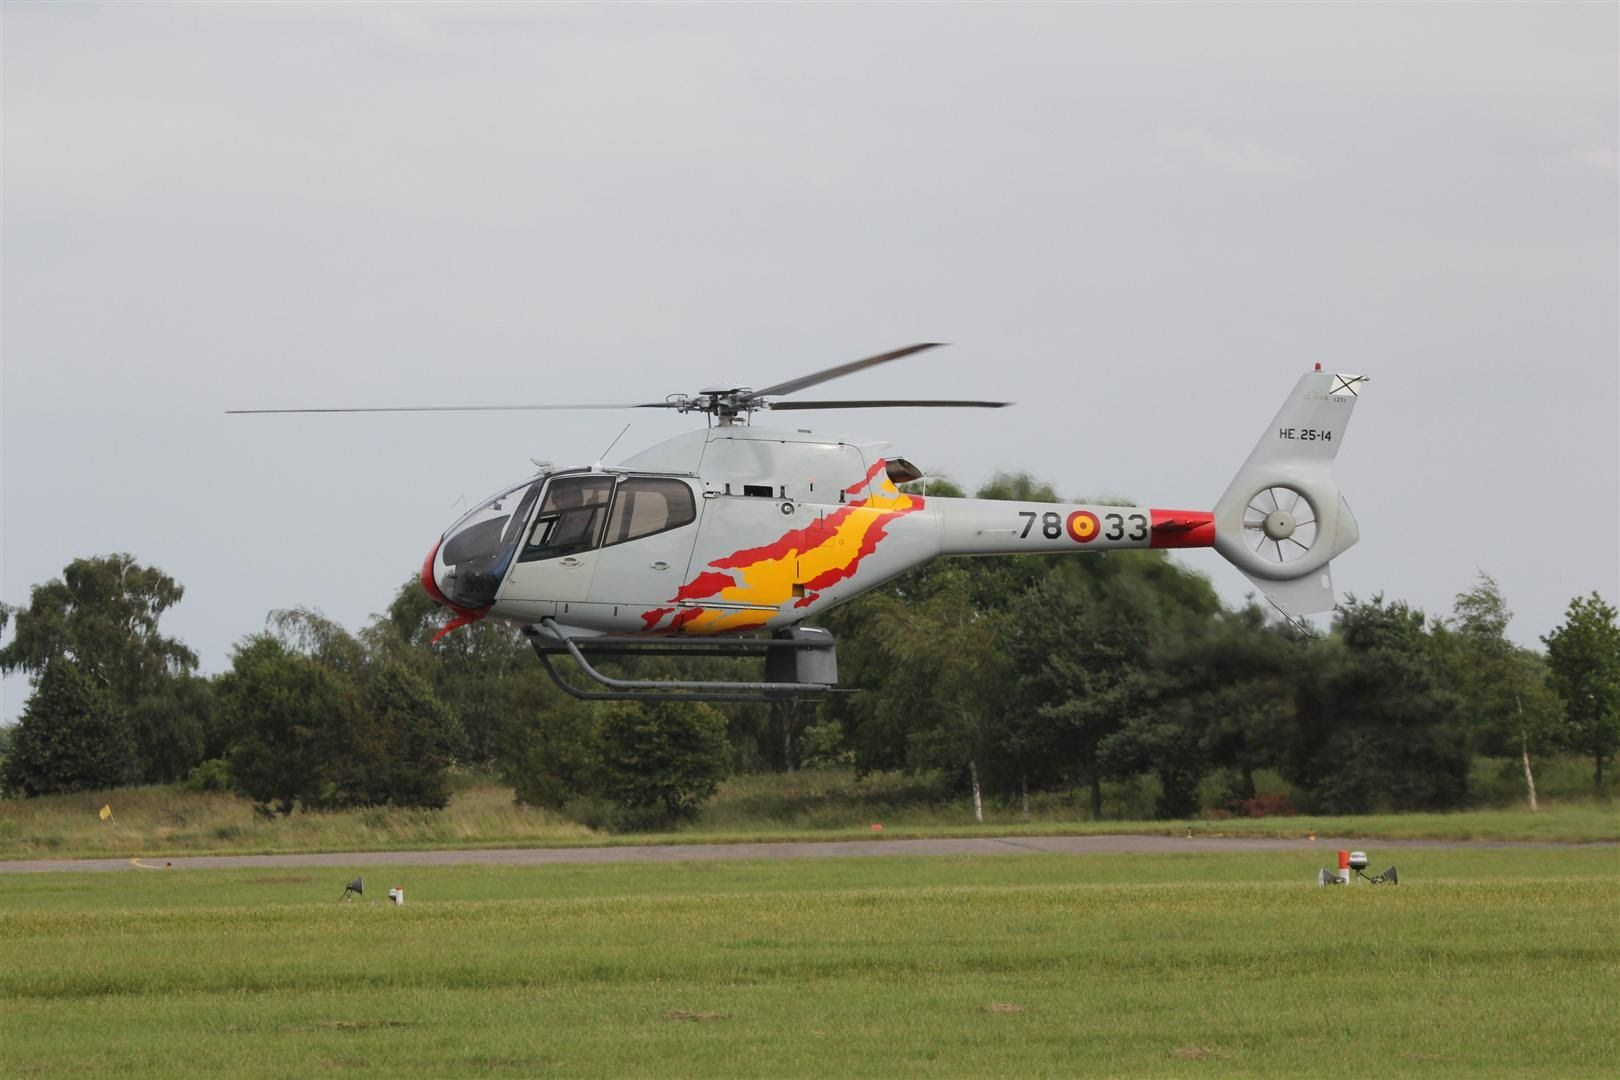 Spanish Air Force - Patrulla Aspa Helicopter Display Team